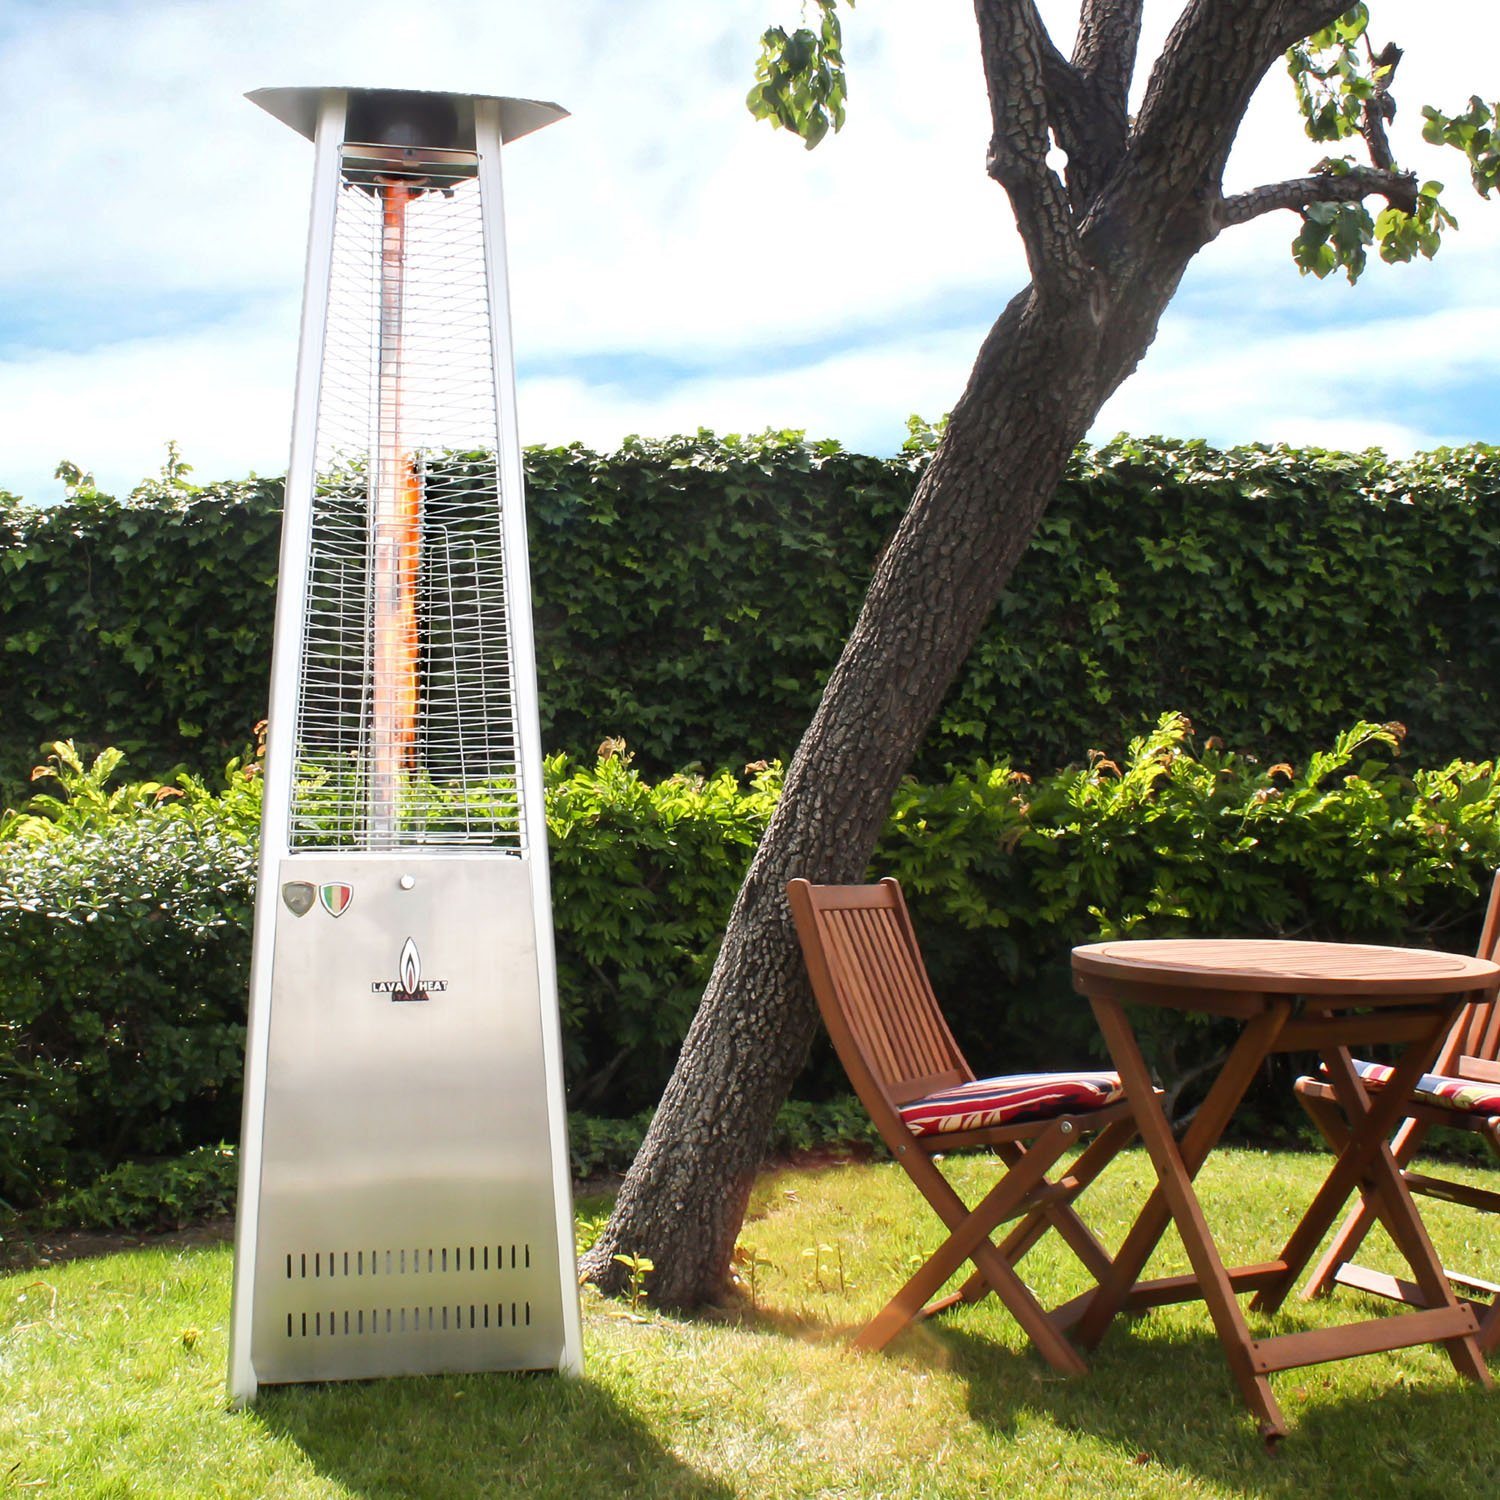 Amazon Lava Heat Italia AMAZON 137 Patio Heater